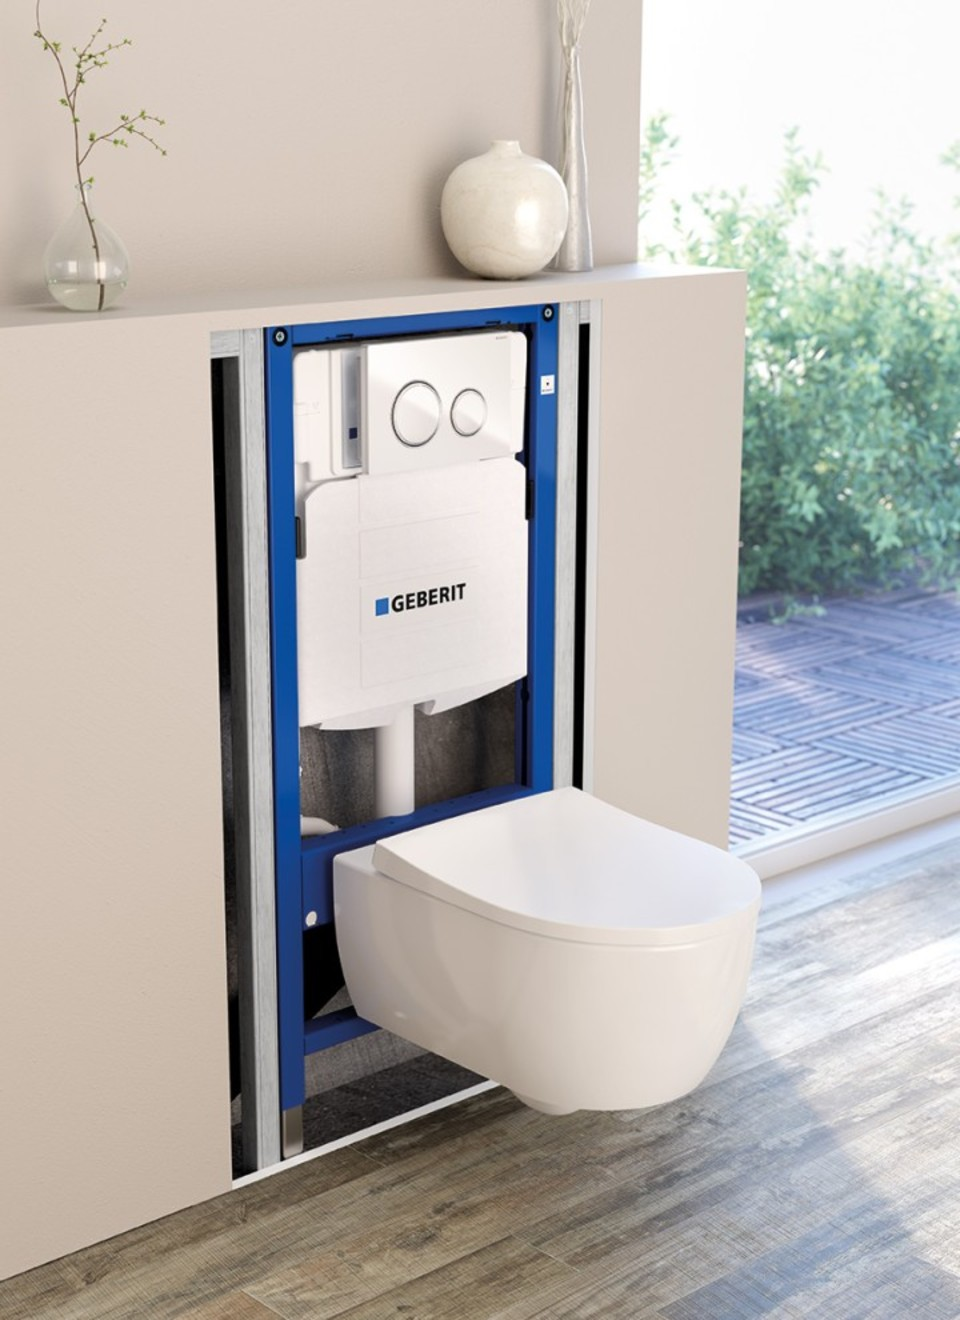 Geberit In Wall Flush Toilet Tank System For Wall Hung Toilet Concealed Cistern With Sigma50 Flush Pla In 2020 Concealed Cistern Wall Hung Toilet Wall Mounted Toilet